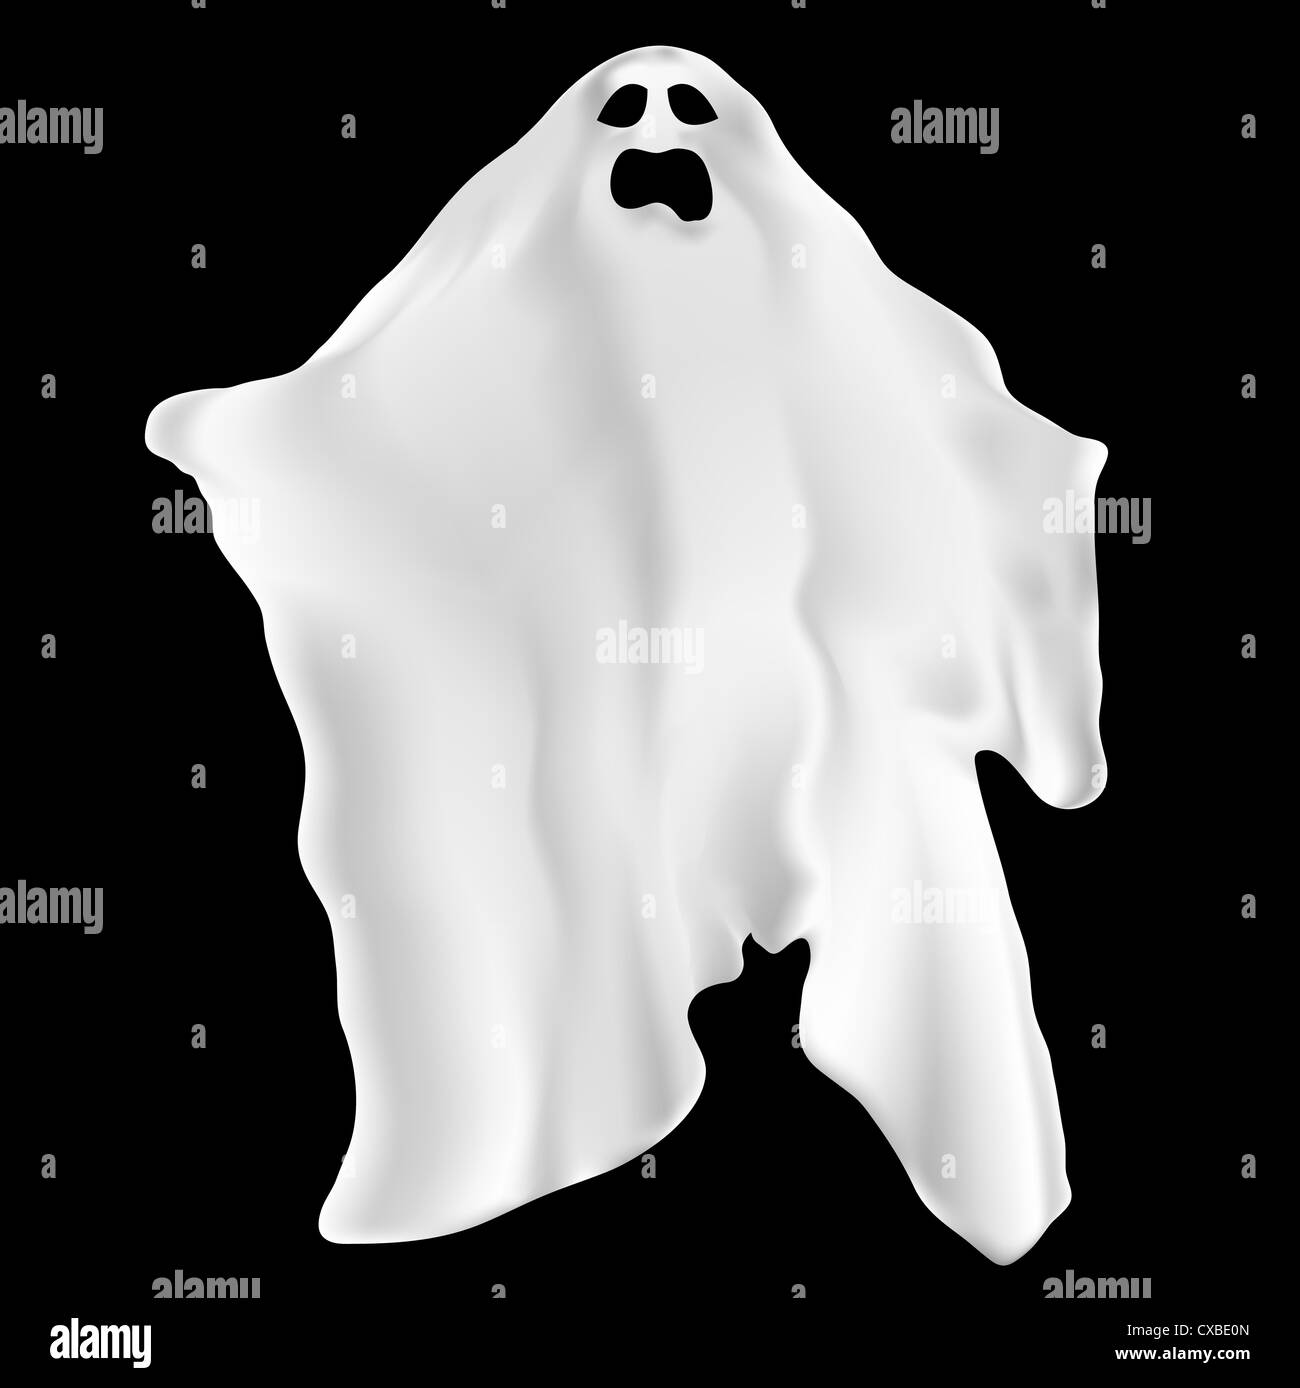 Illustration of a spooky ghost - Stock Image